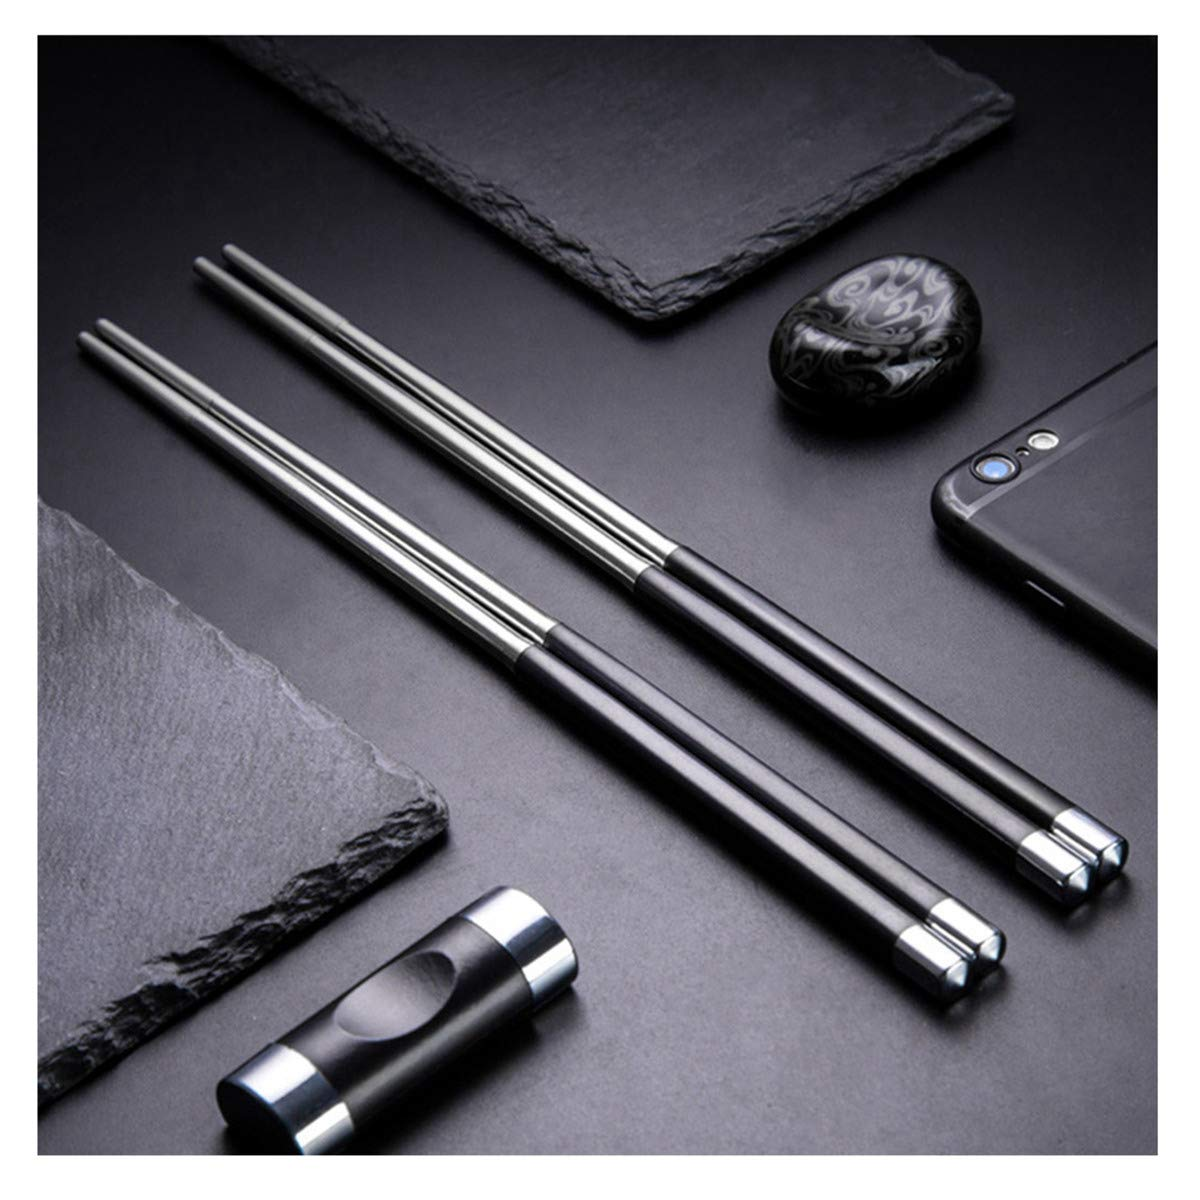 5 Pair Stainless Steel Chopsticks Gift Set Japanese Hotel Restaurant Chopsticks Set (Japan)